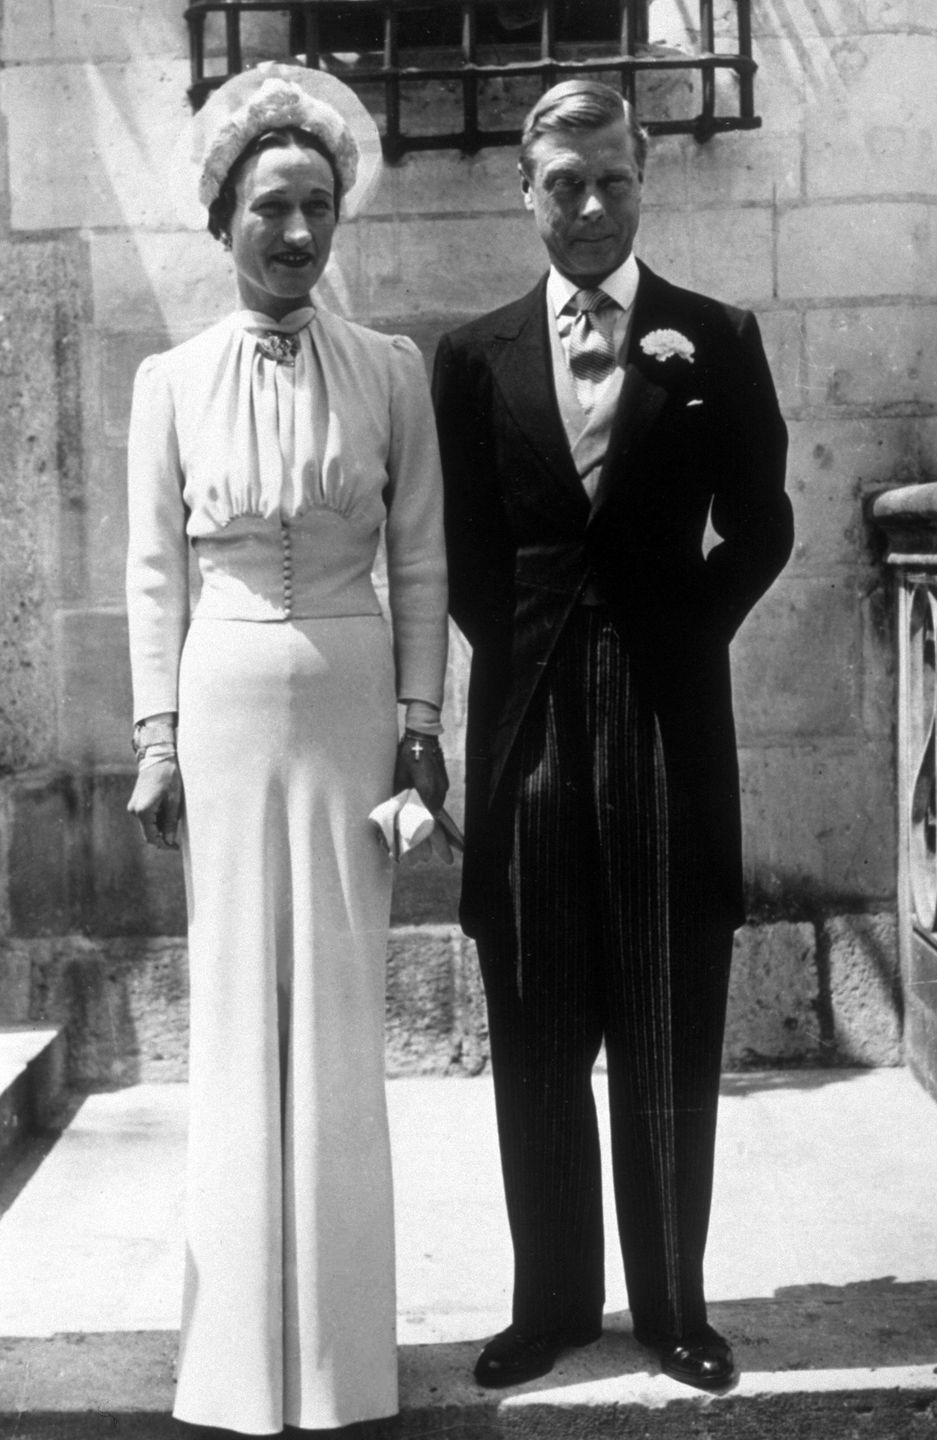 <p>For the nuptials that caused the Duke of Windsor to abdicate the British throne, Wallis Simpson wore a long-sleeve column gown with a high neckline.</p>